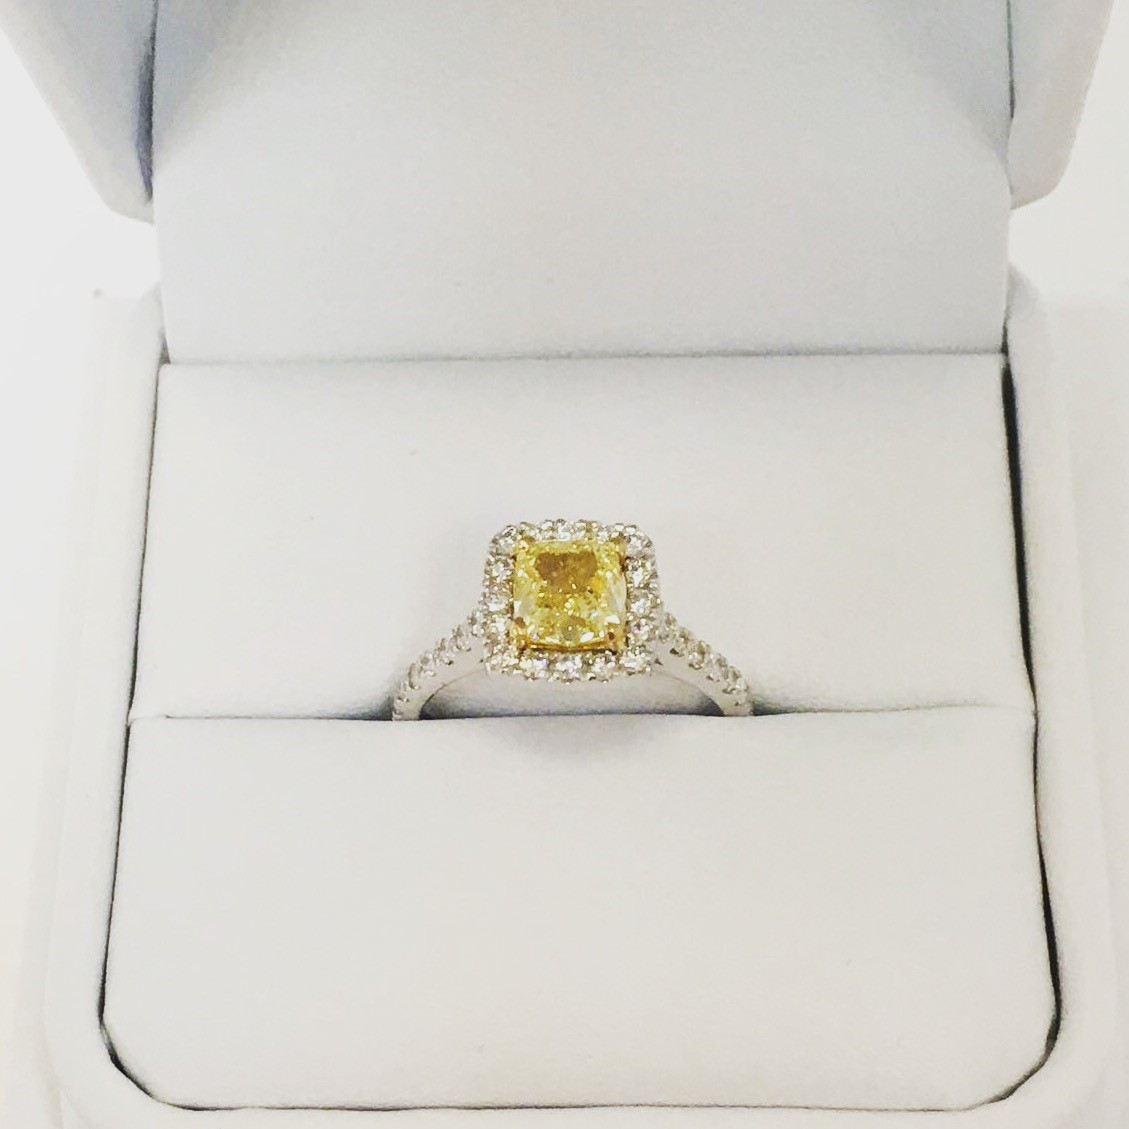 unplated aliexpress citrine on diamond rings flawless in ring engagement jewelry if set com pave gold round from item alibaba yellow accessories